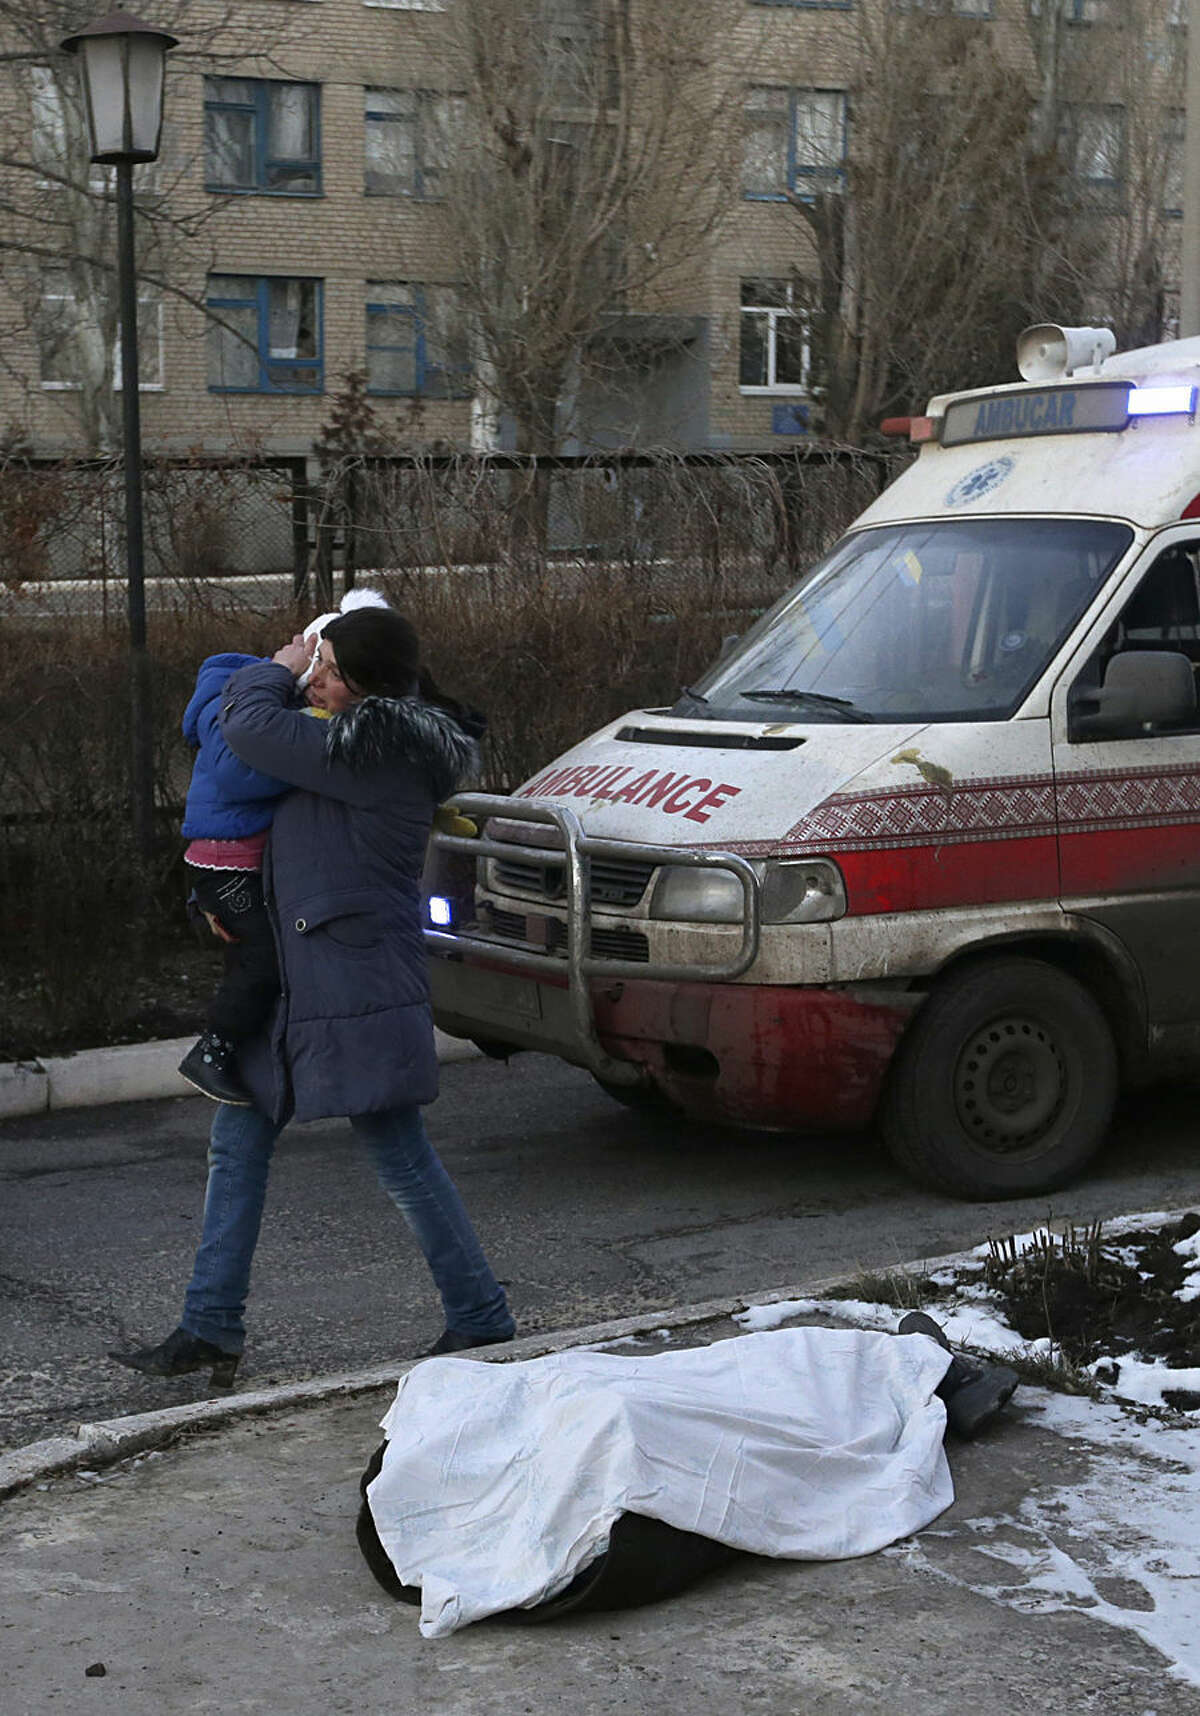 A woman carrying a child walks past the body of a child covered with a cloth after shelling between Russian-backed separatists and Ukrainian government forces in a residential area of the town of Artemivsk, Ukraine, Friday, Feb. 13, 2015. Despite a looming cease-fire deal for eastern Ukraine, a government-held town 40 kilometers (25 miles) behind the front line has been hit by shelling, killing at least one person. The deadline for the warring sides to halt hostilities is Sunday morning at one minute after midnight. (AP Photo/Petr David Josek)